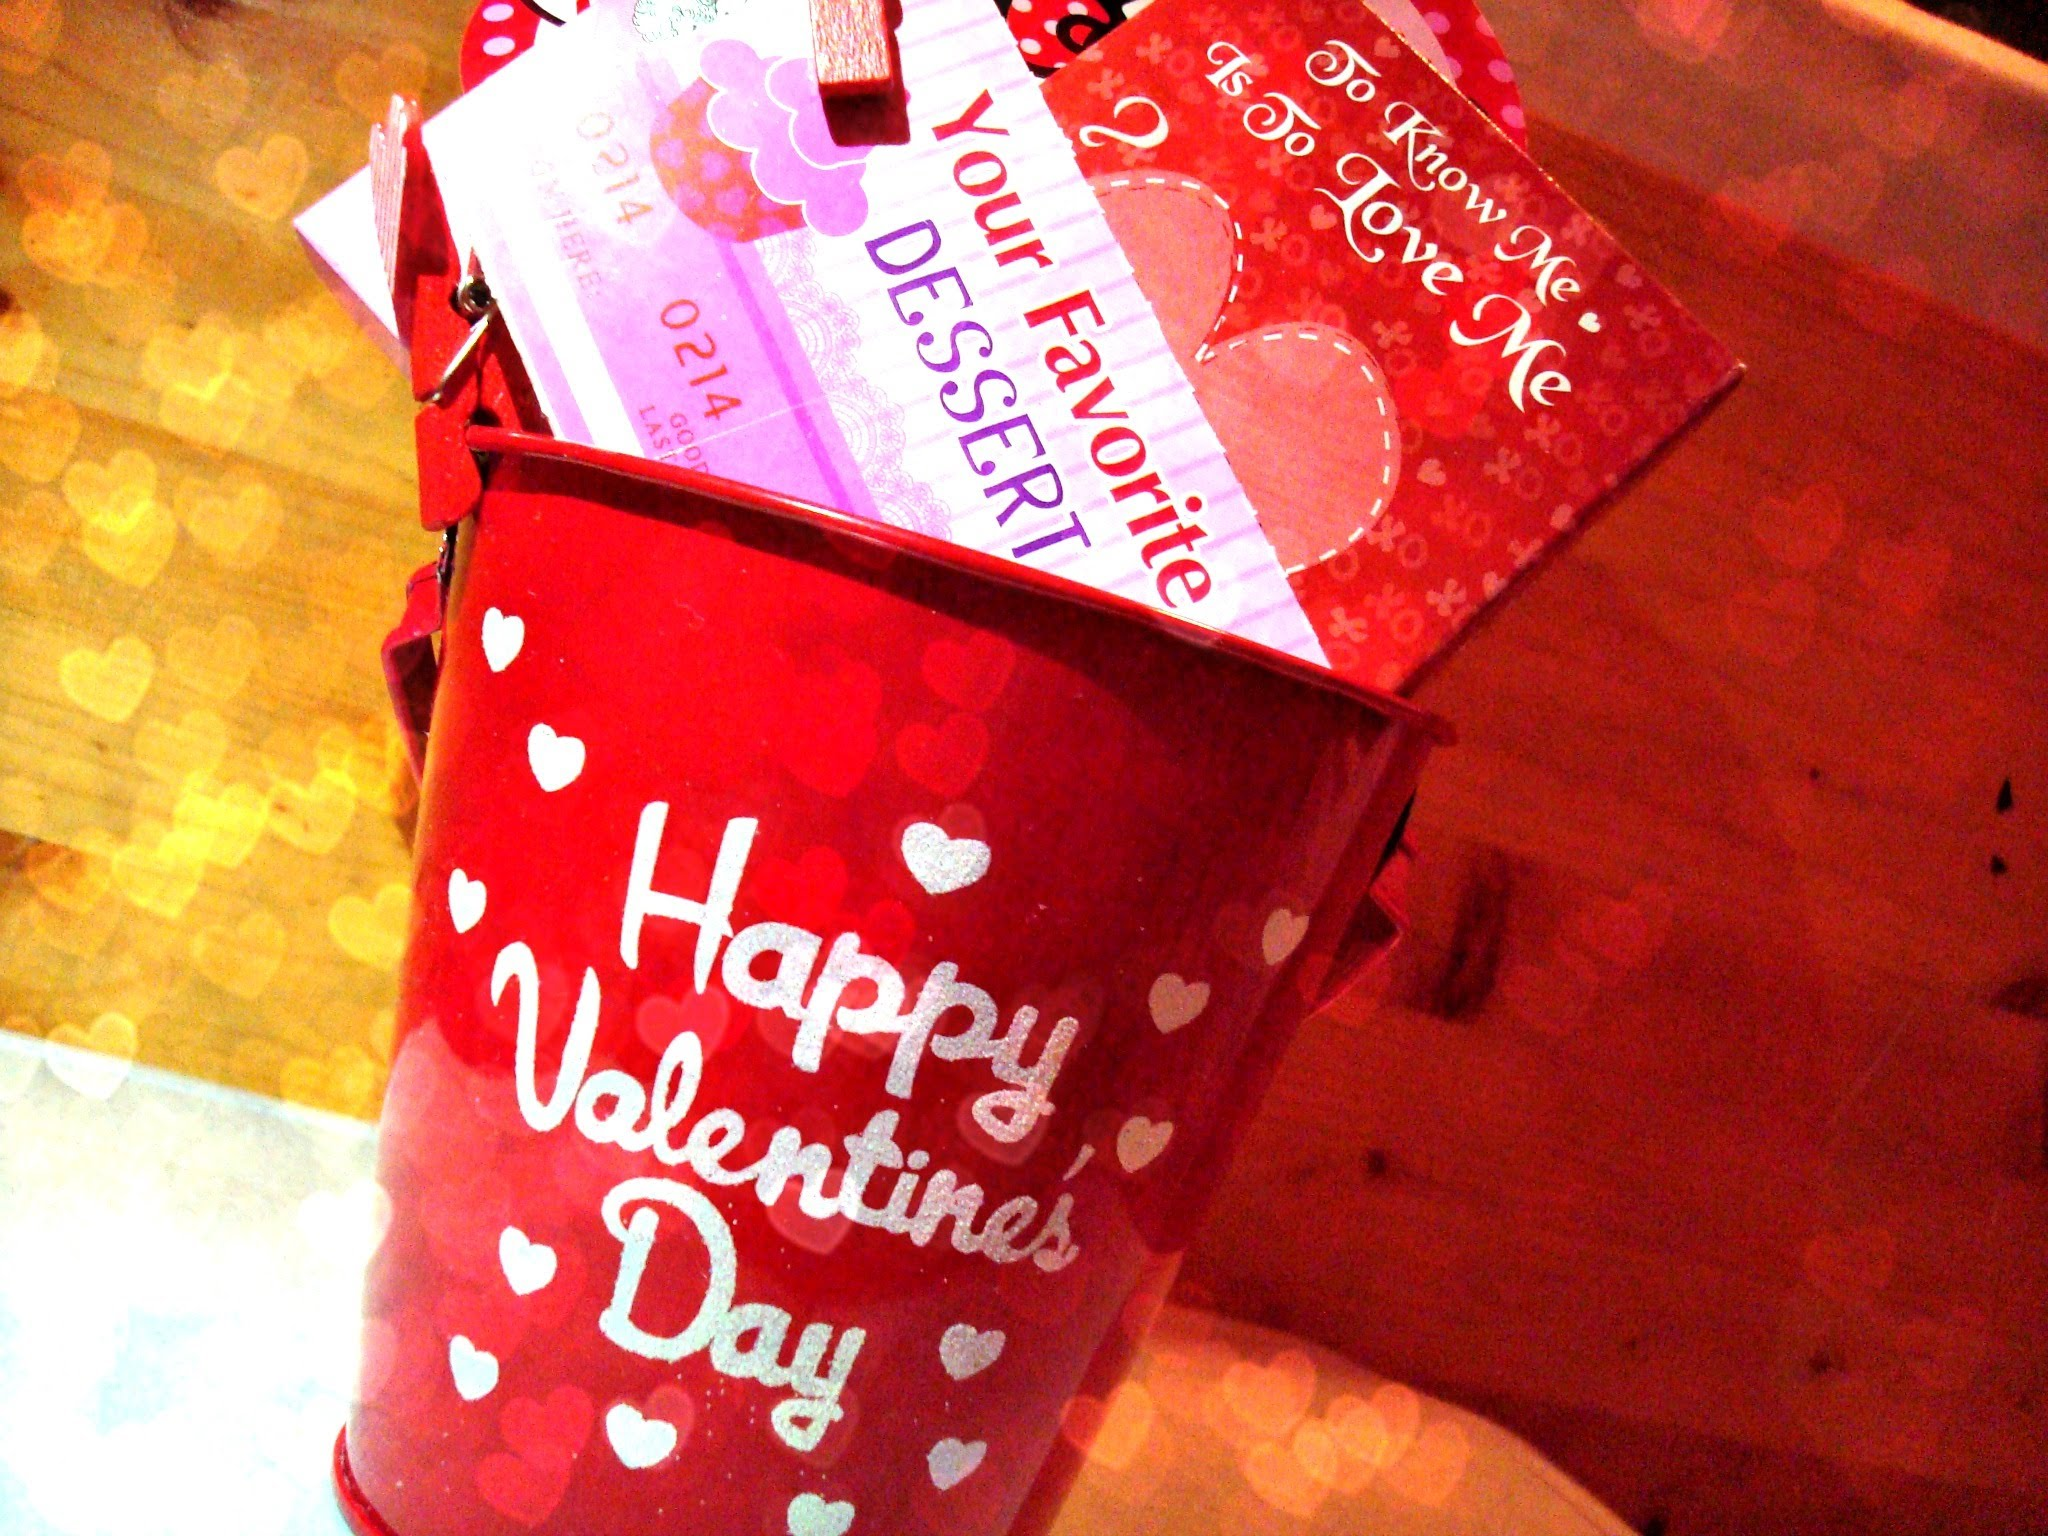 Valentine's Day: Last Minute Gift Ideas (Homemade Gift Basket) - YouTube